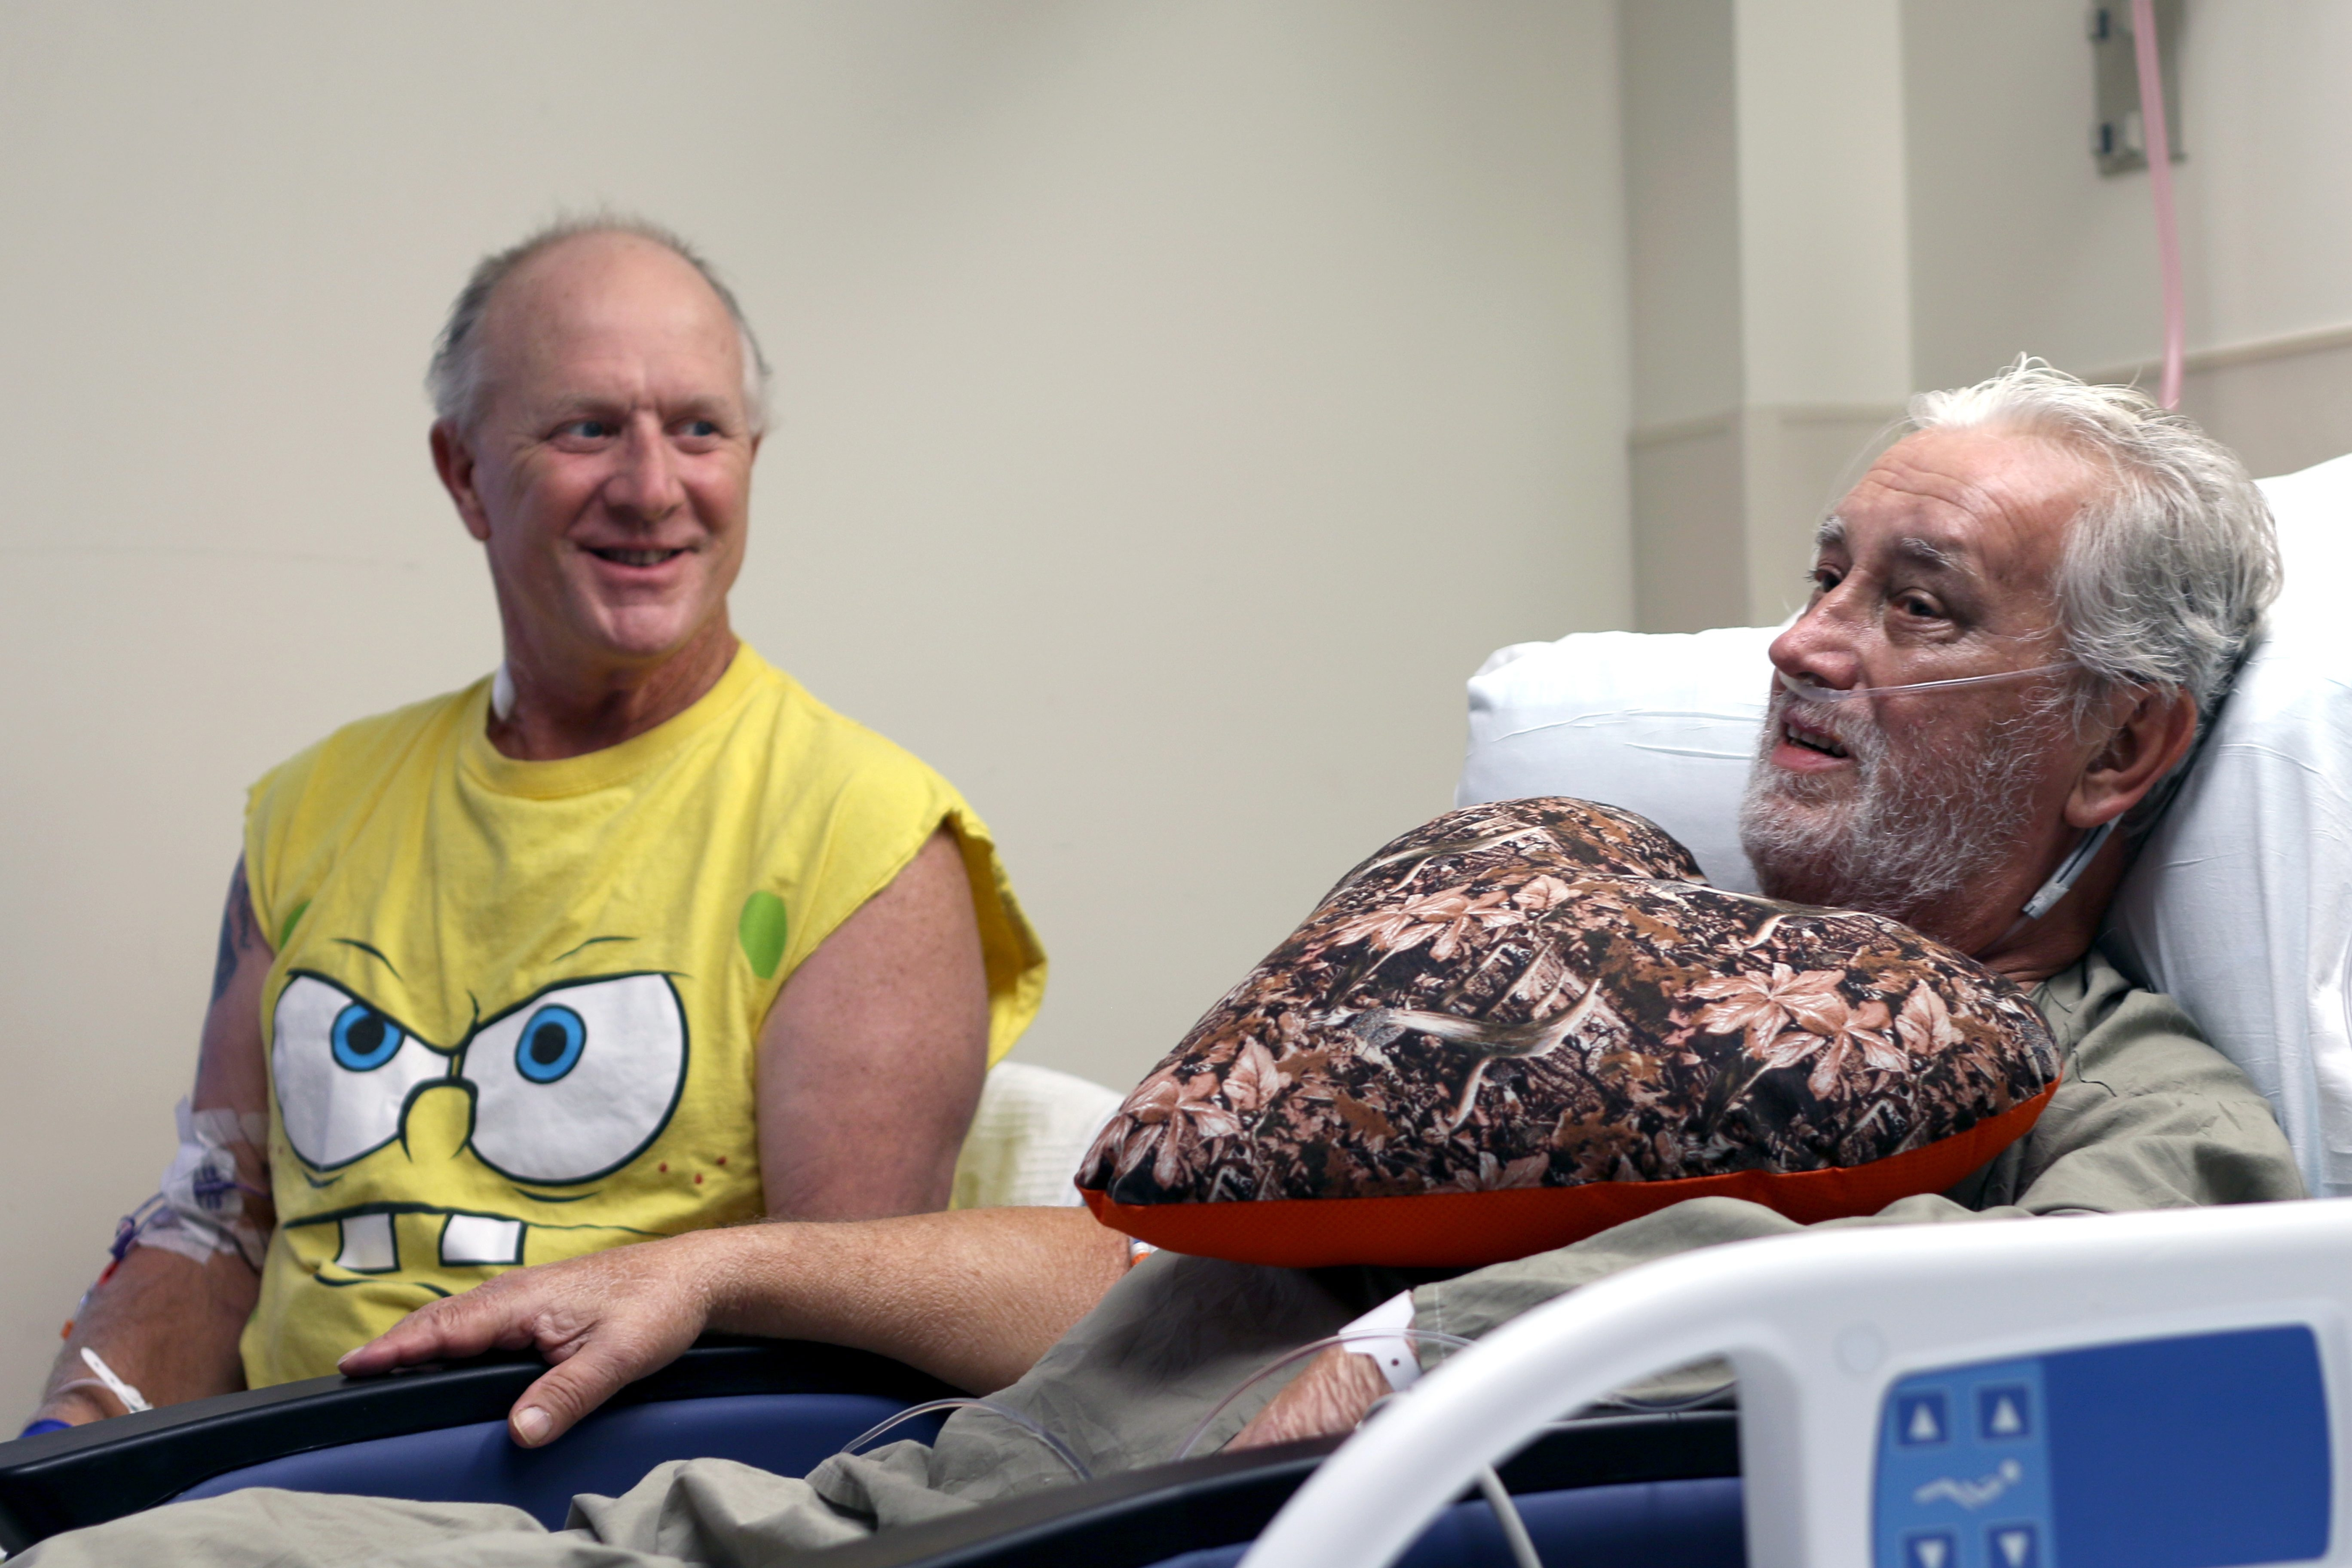 Frank Pluta, left, and Jerry Galuszka both received heart transplants at University of Rochester Medicine's Strong Memorial Hospital in Rochester.